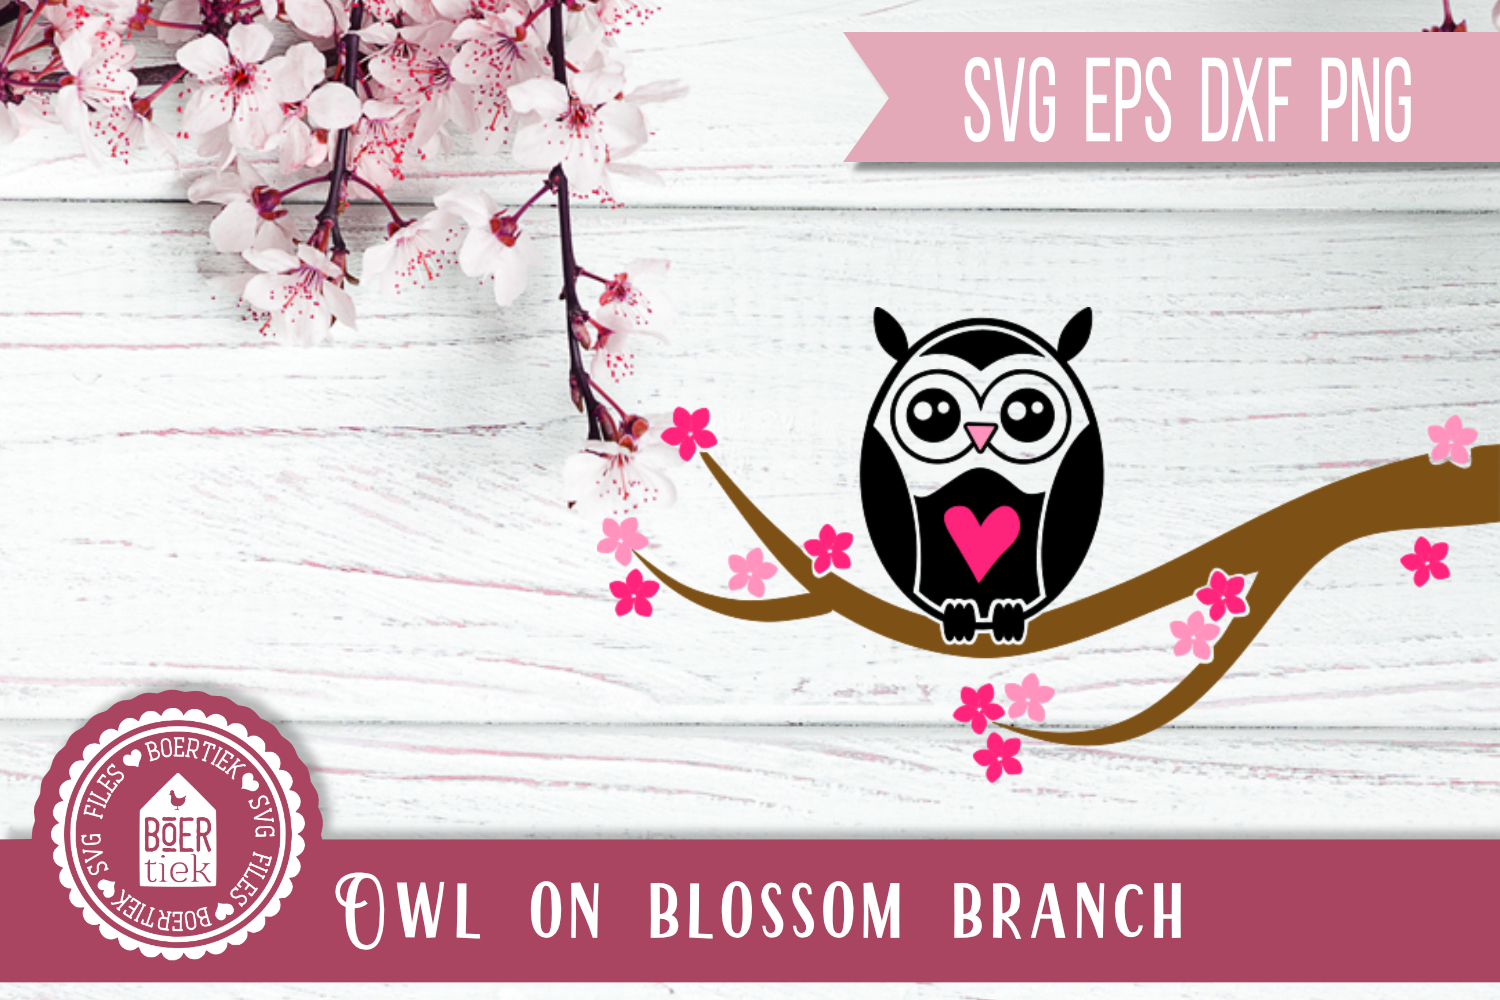 Download Free Owl On Blossom Branch Graphic By Boertiek Creative Fabrica for Cricut Explore, Silhouette and other cutting machines.